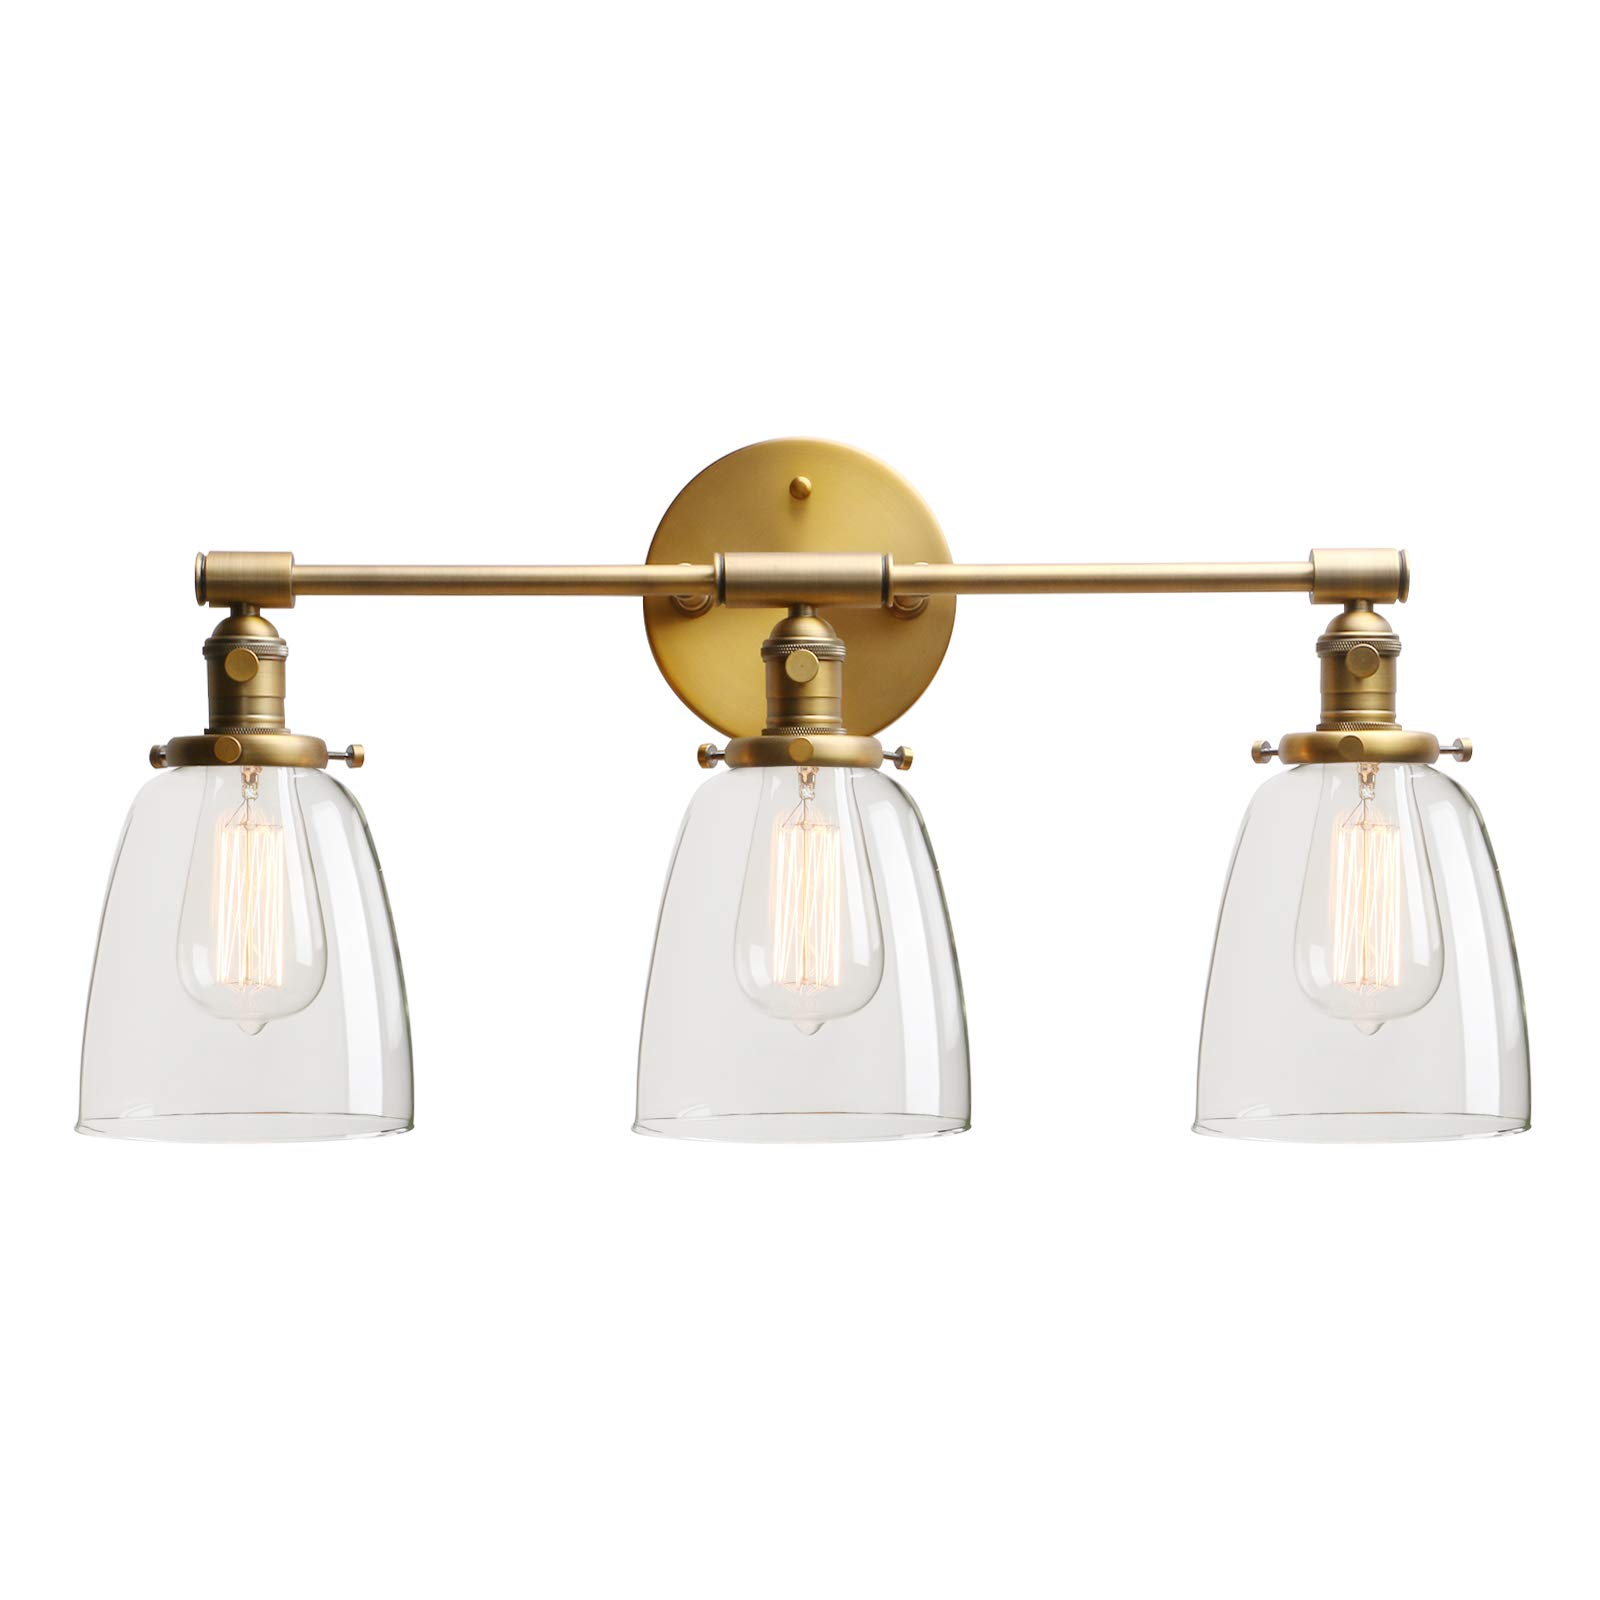 Permo Vintage Industrial Antique Three-Light Wall Sconces with Oval Cone Clear Glass Shade (Antique)